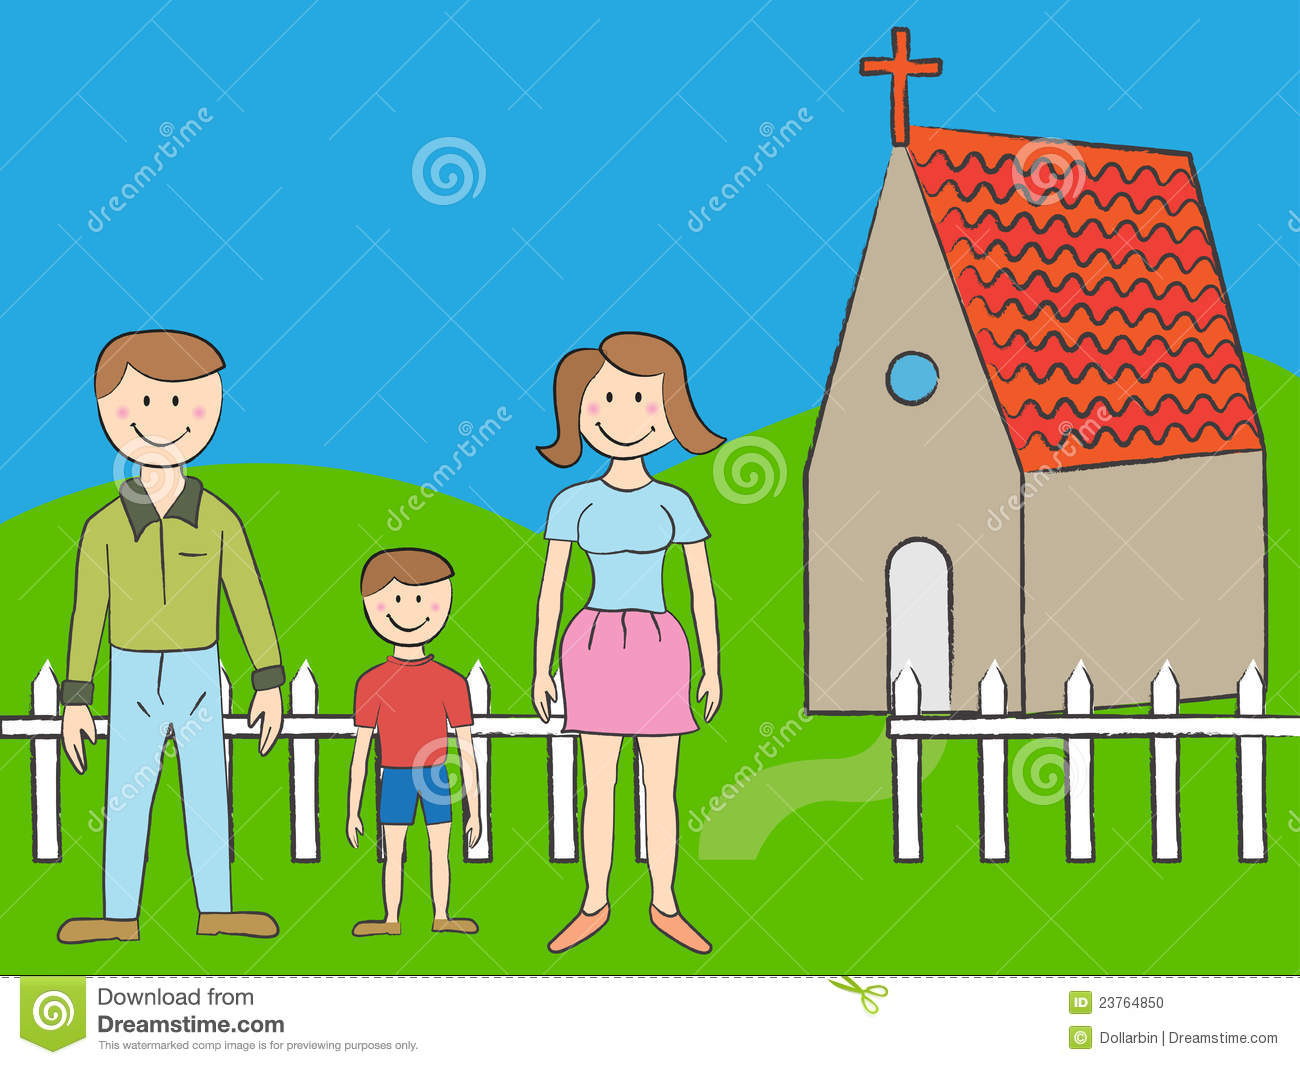 Cartoon family of three with church in background.